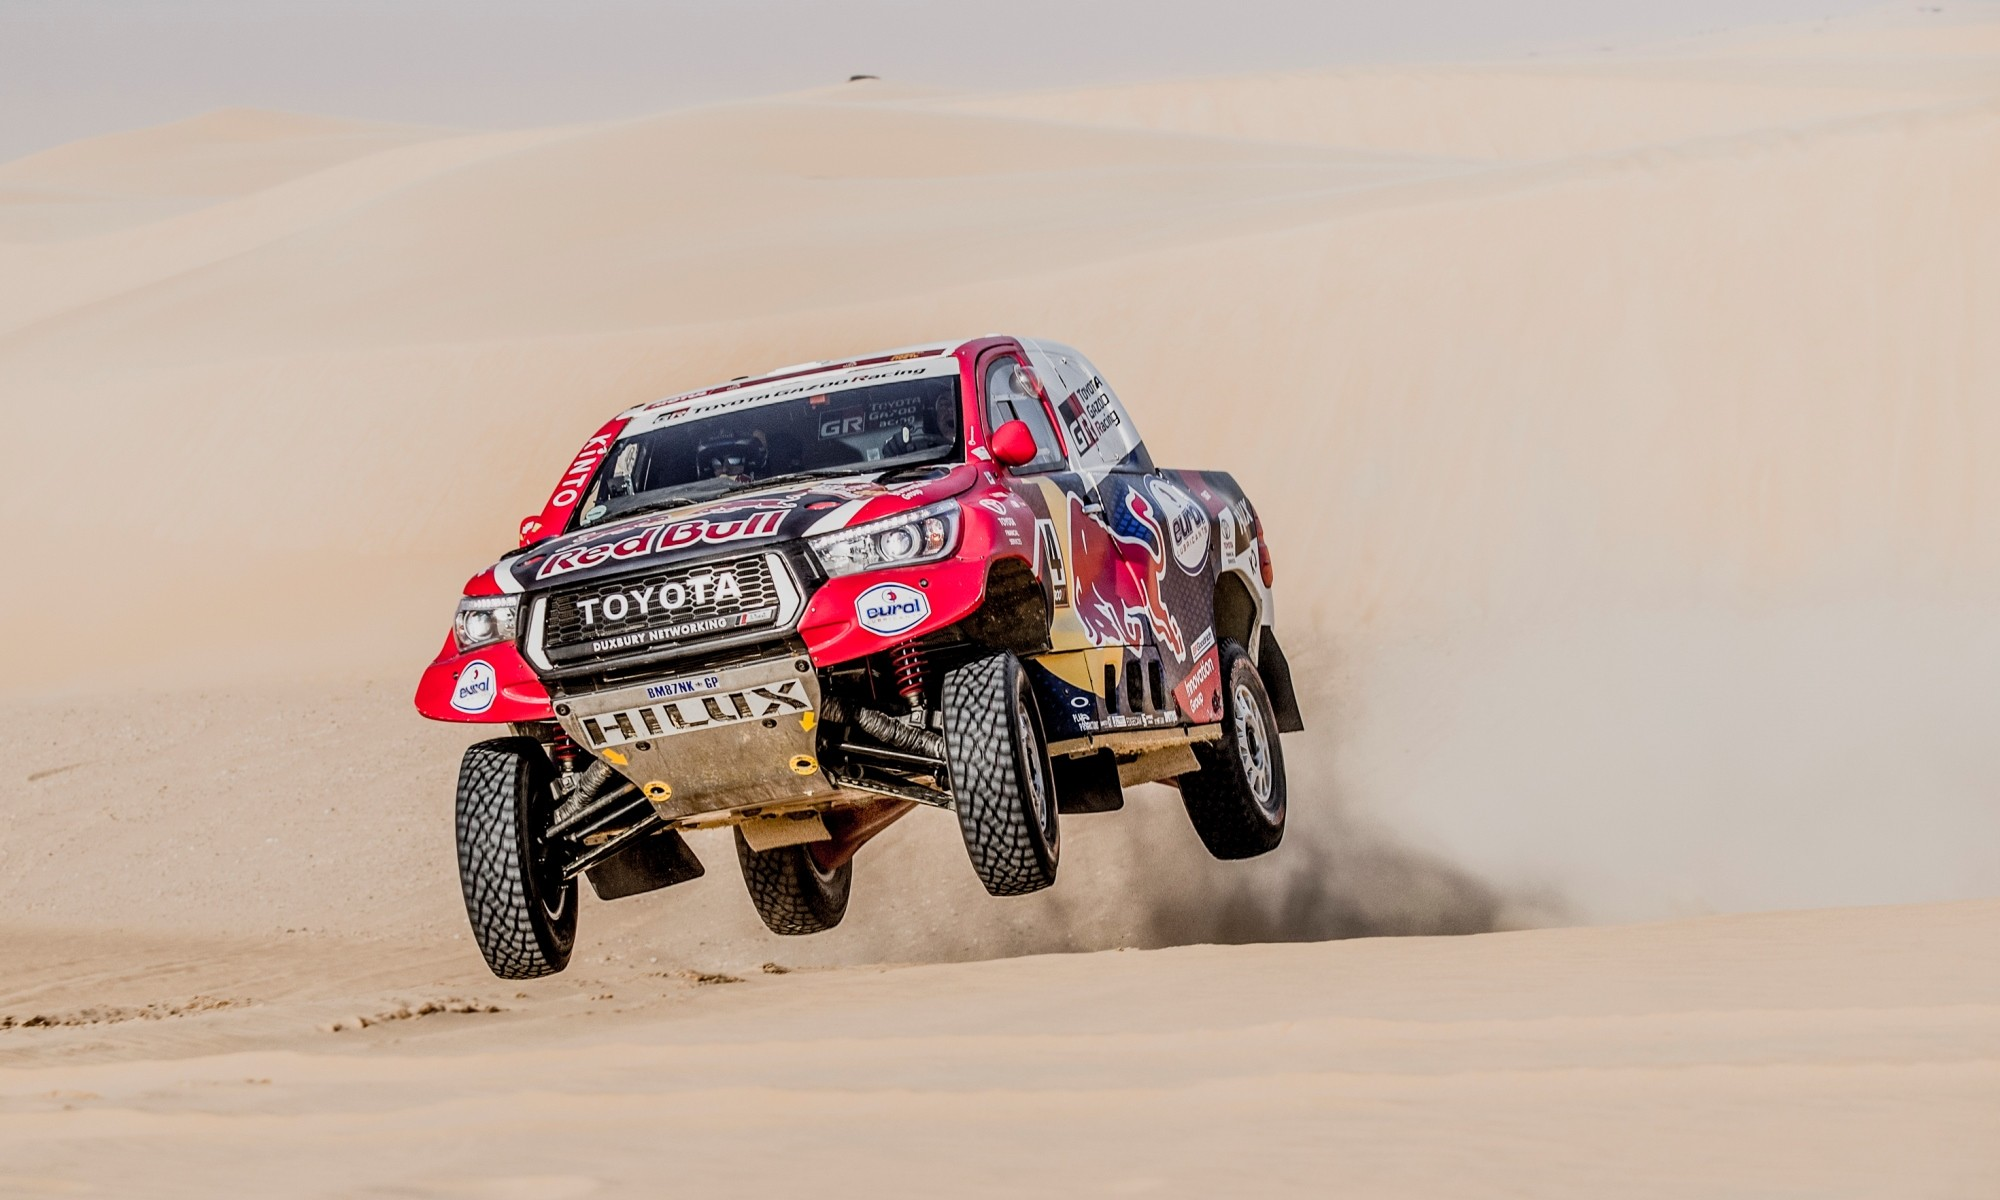 Giniel de Villiers was third on 2020 Dakar Stage 10